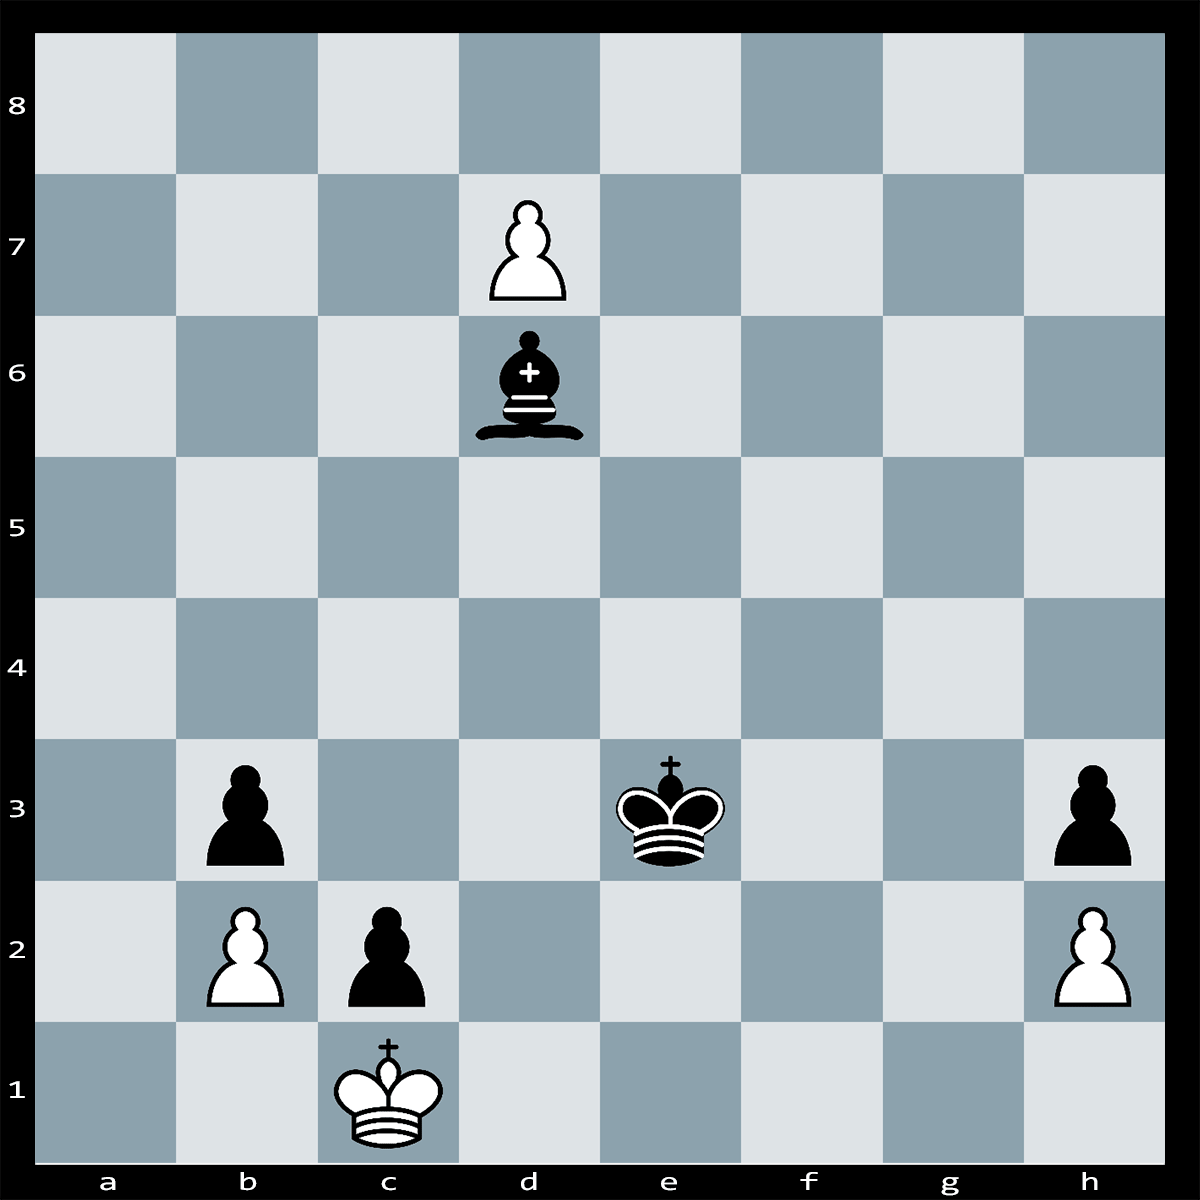 Find the Best Move for White, Force a Stalemate